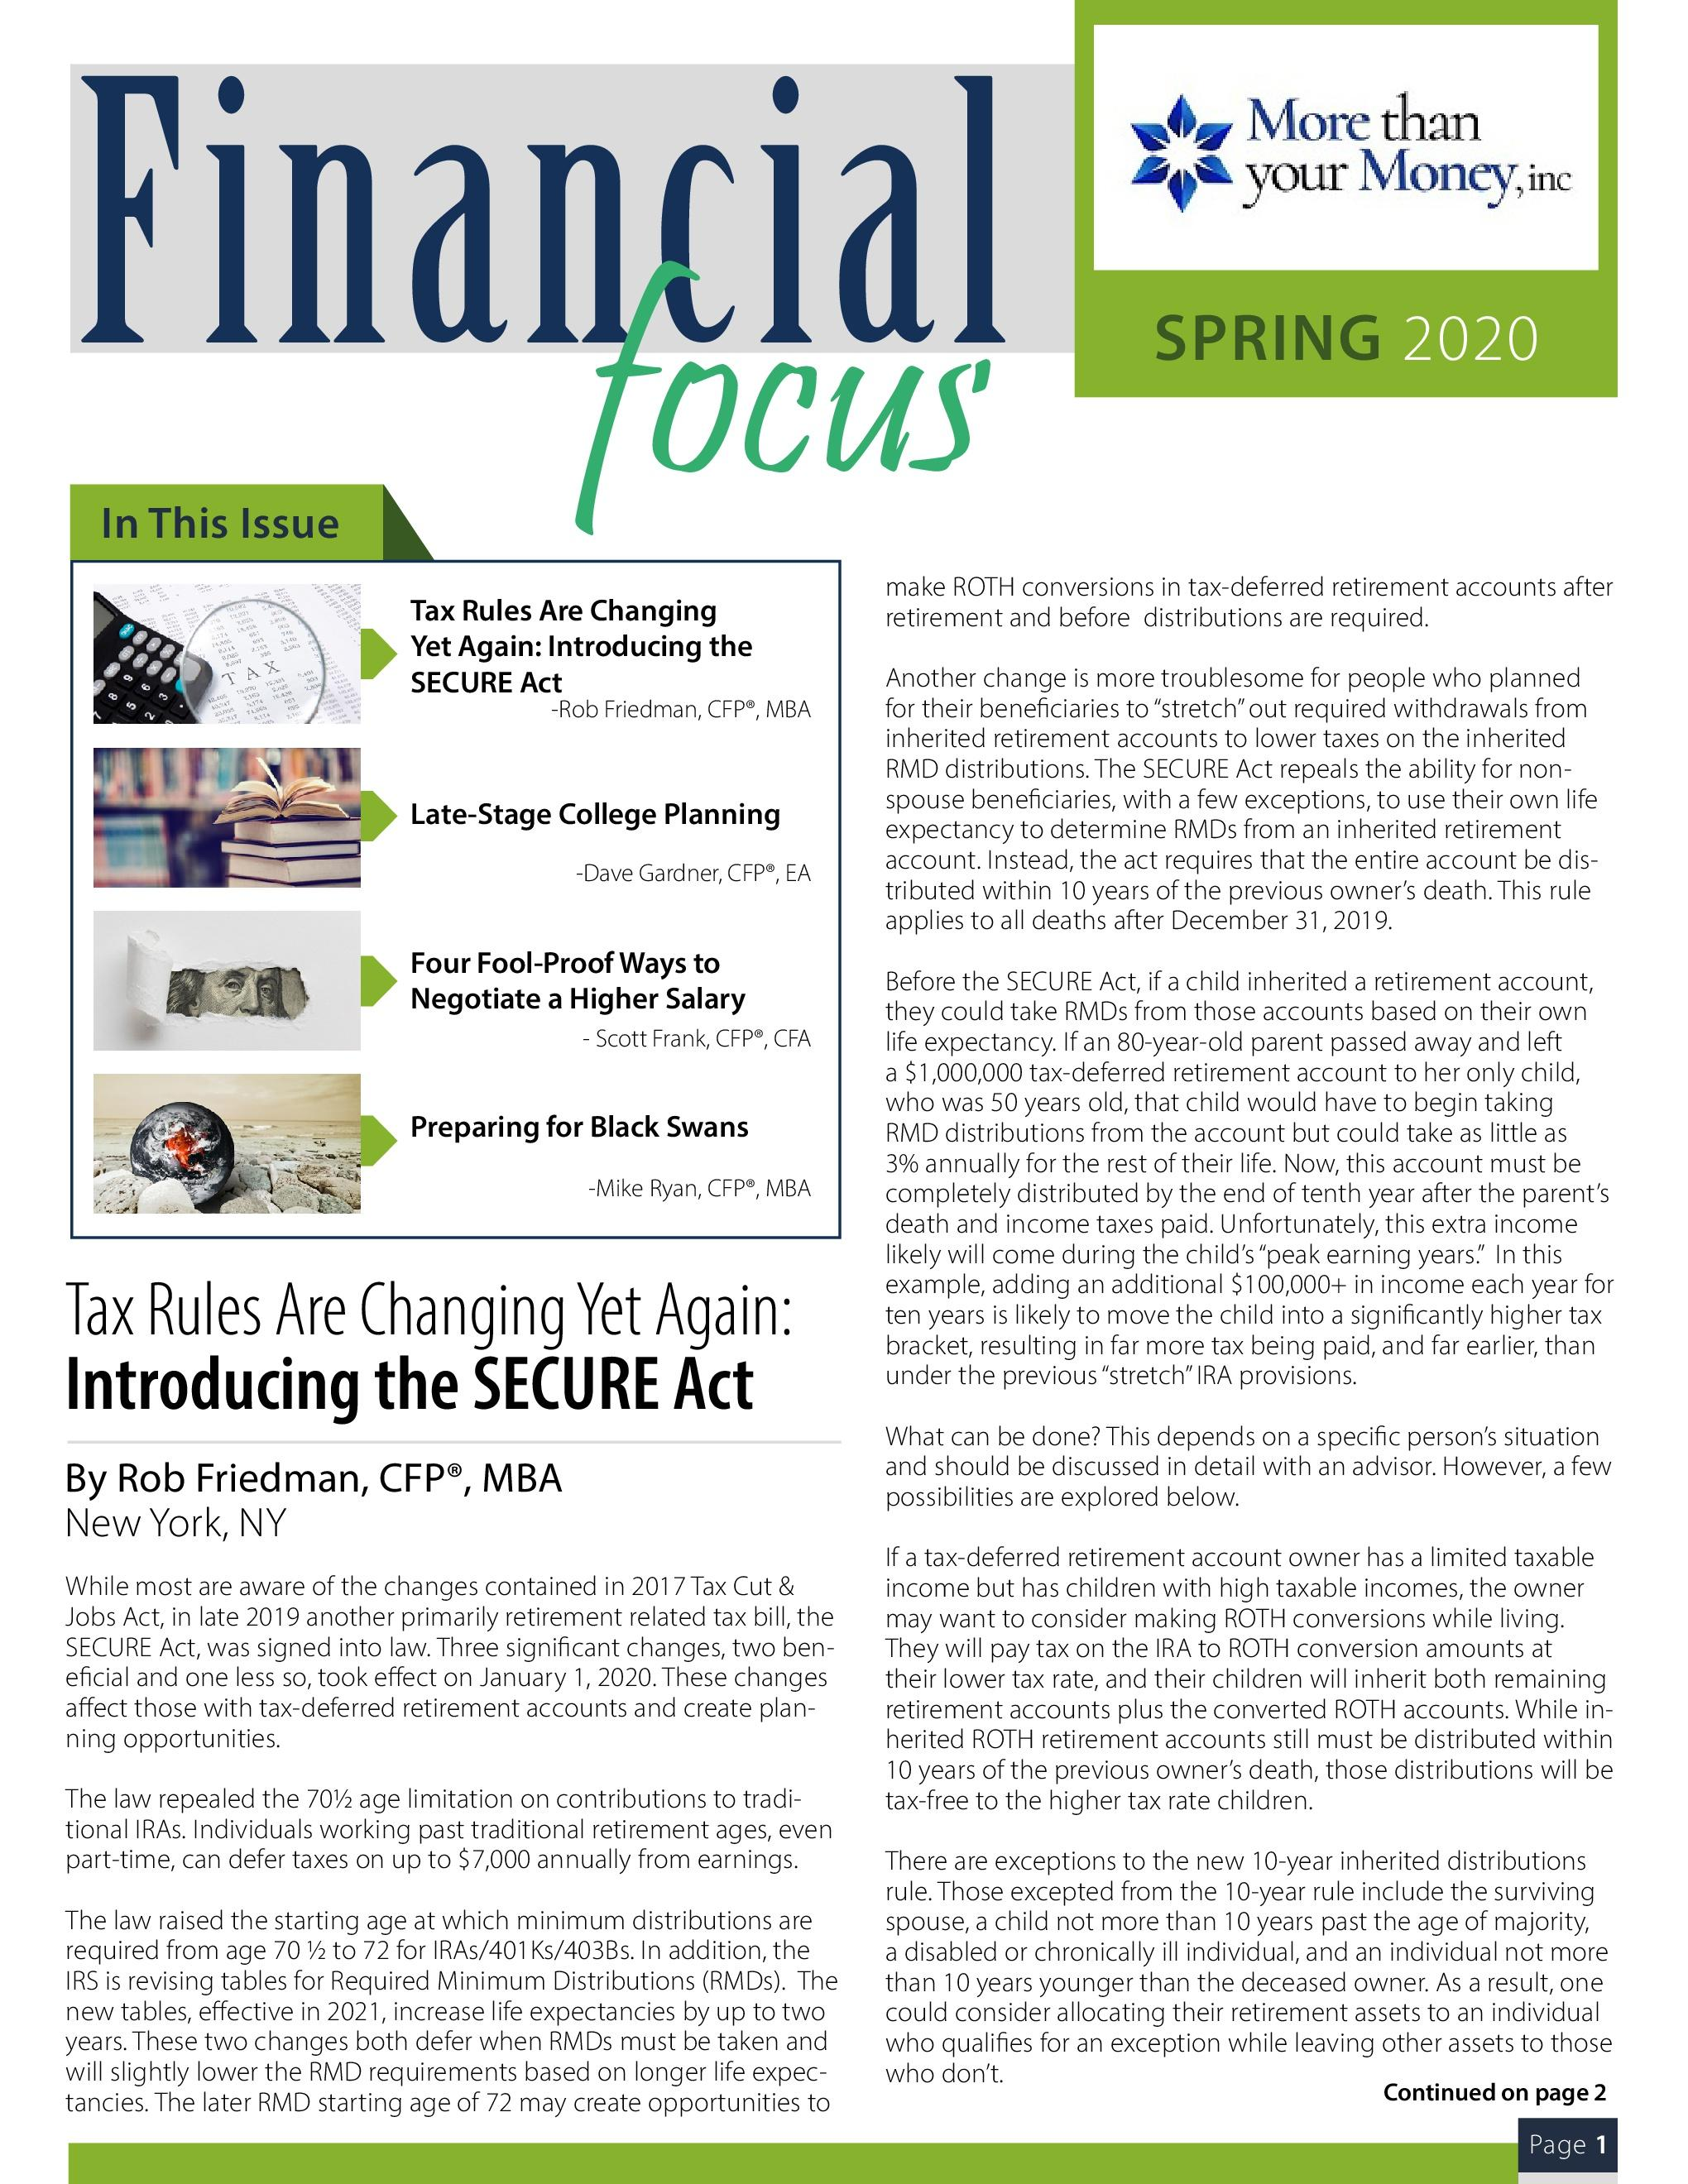 Financial Focus Spring 2020 Thumbnail